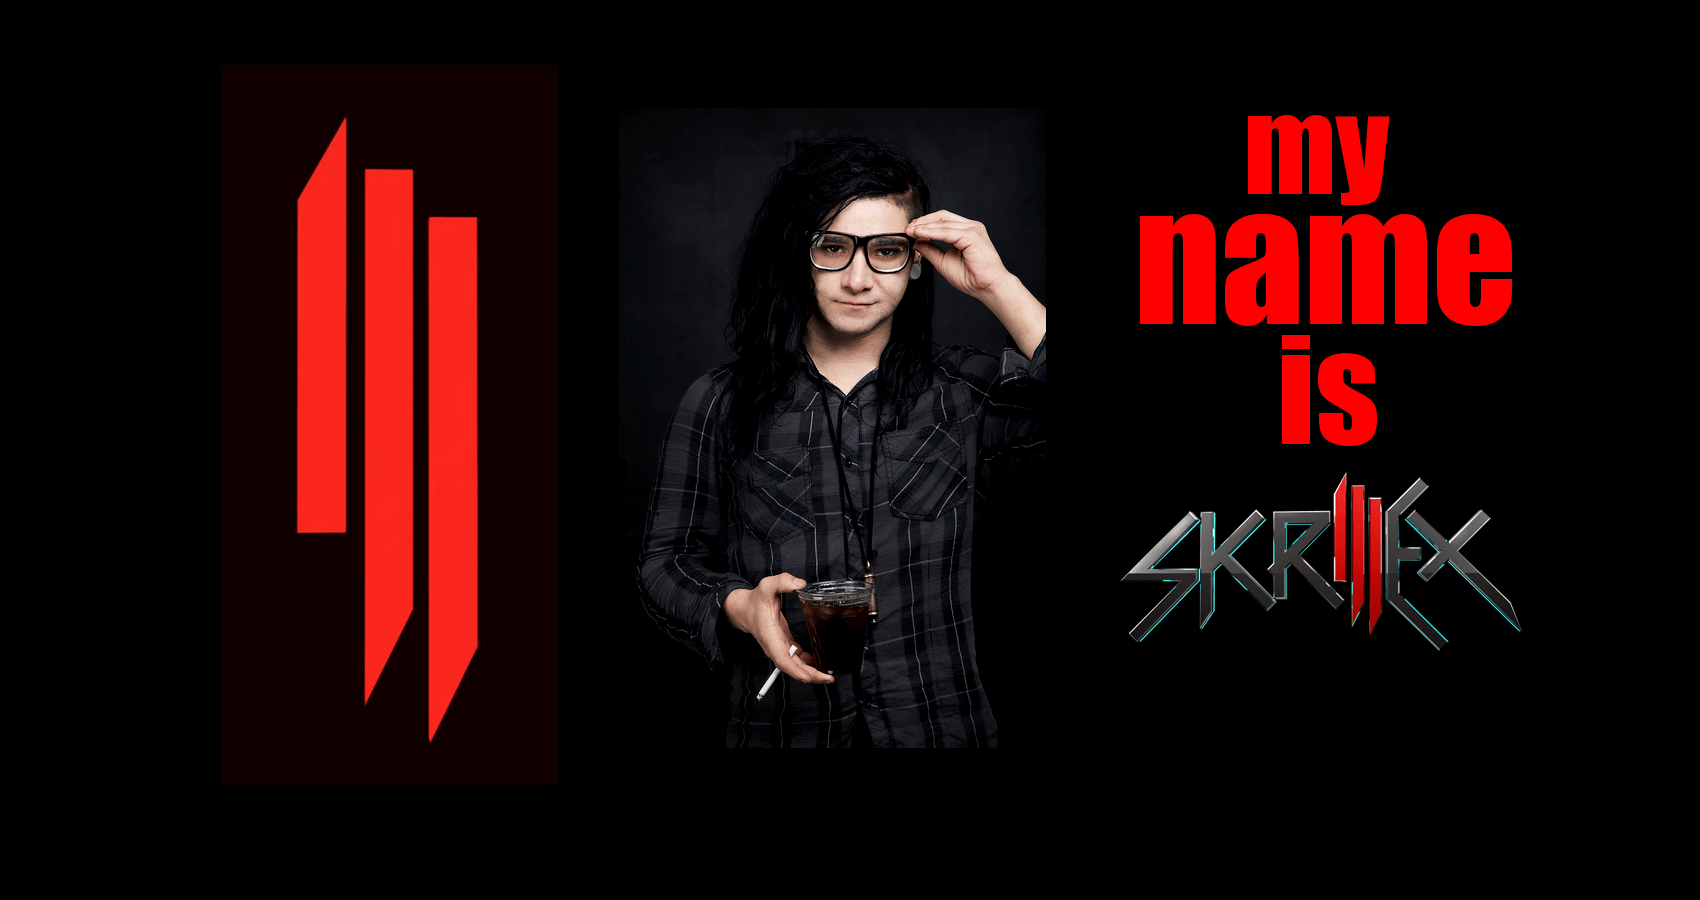 Skrillex Backgrounds - Wallpaper Cave